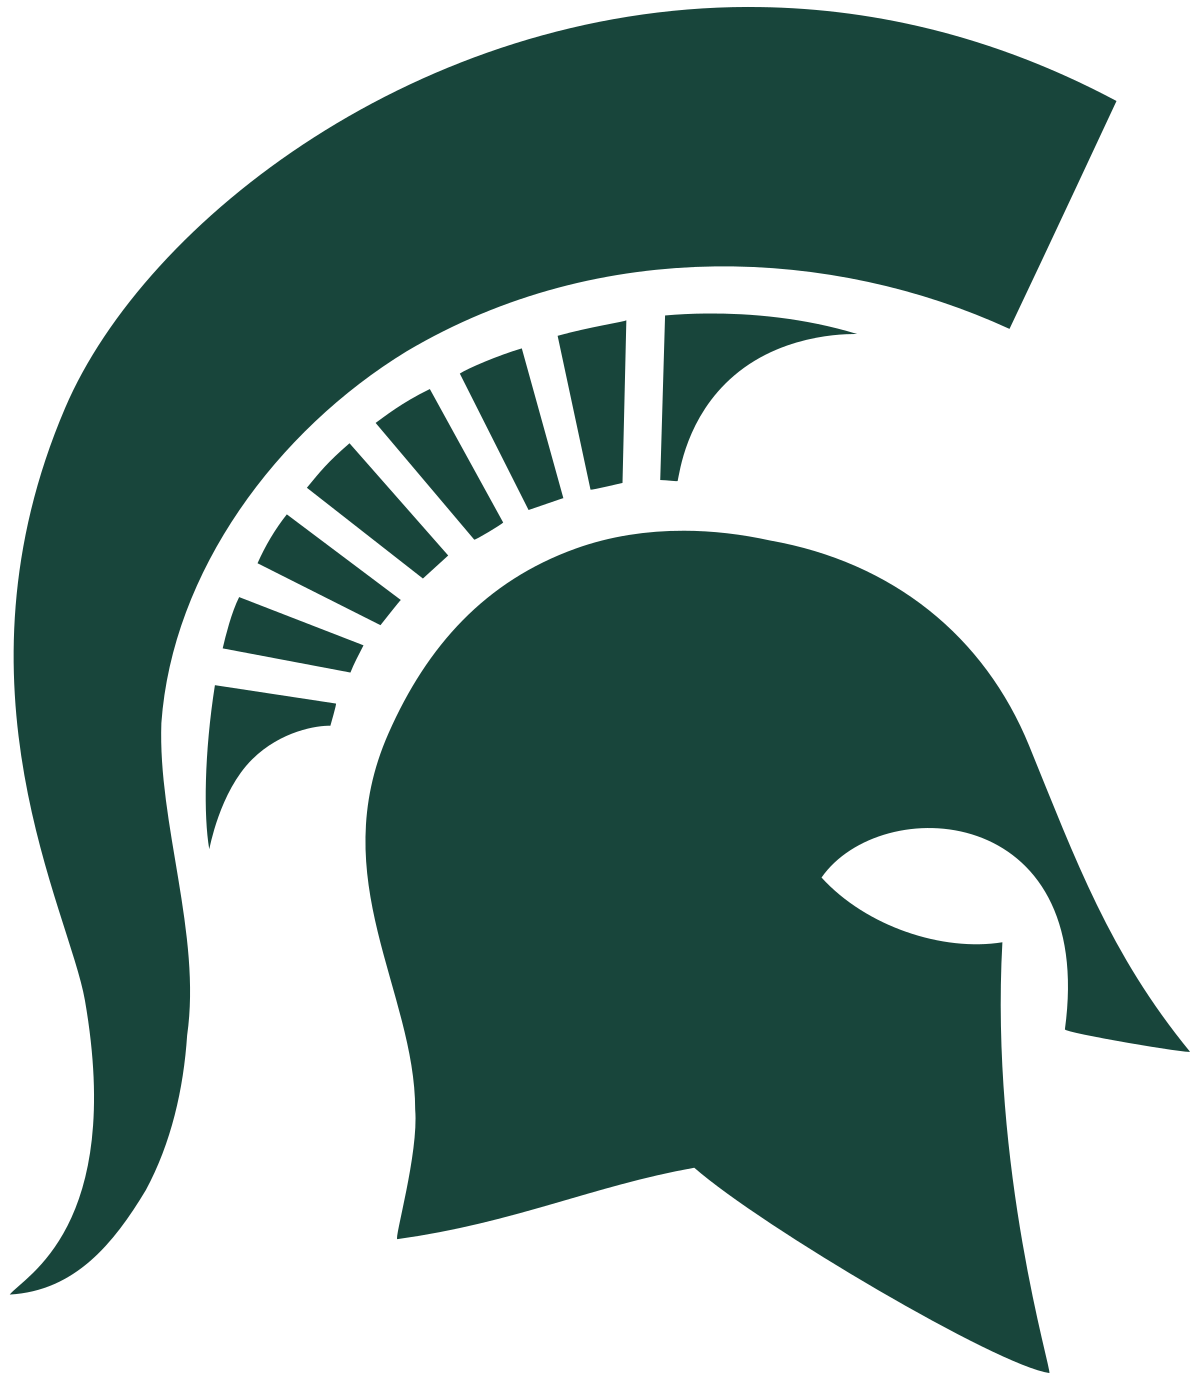 Michigan State Spartans - Wikipedia clipart black and white download